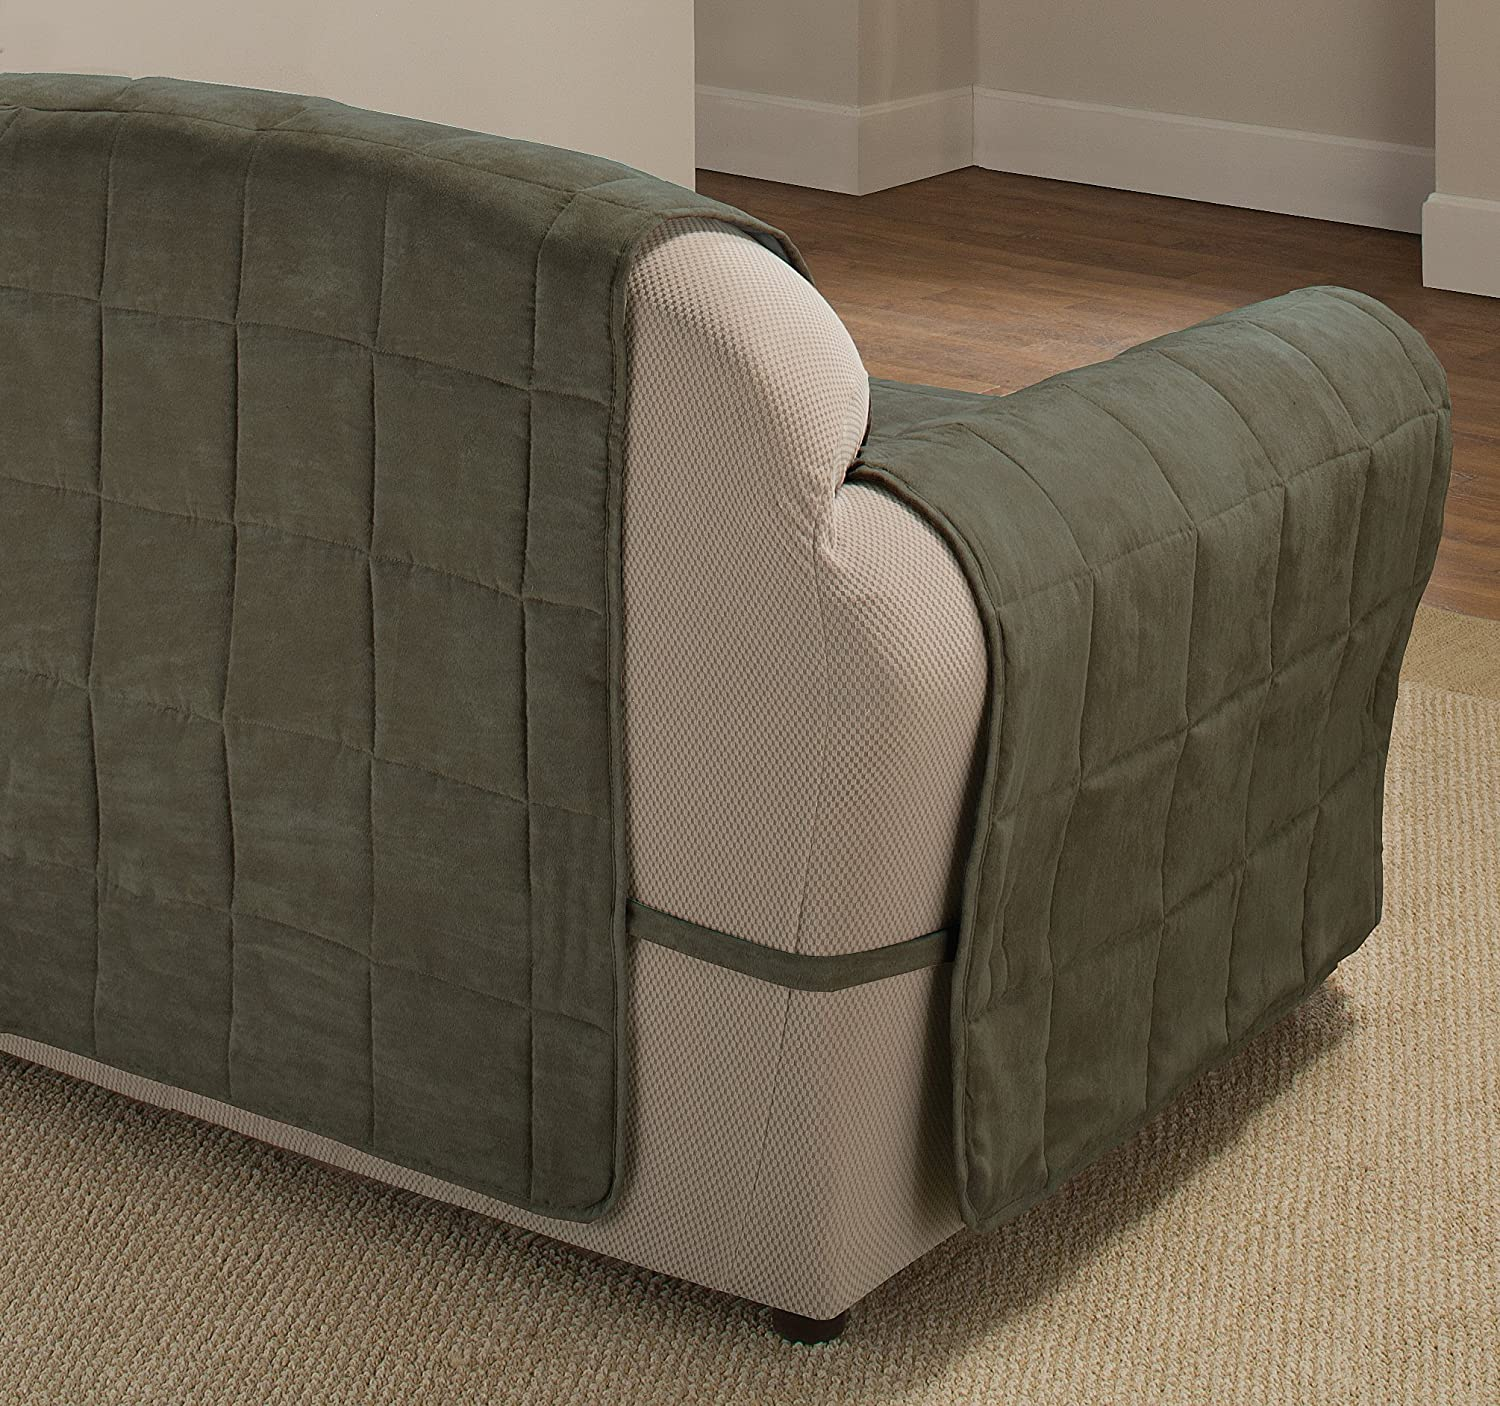 Suede ULTIMATE FURNITURE PROTECTOR PET DOG SLIP COVER SOFA  : 91BWUg6QpLLSL1500 from ebay.com size 1500 x 1406 jpeg 535kB